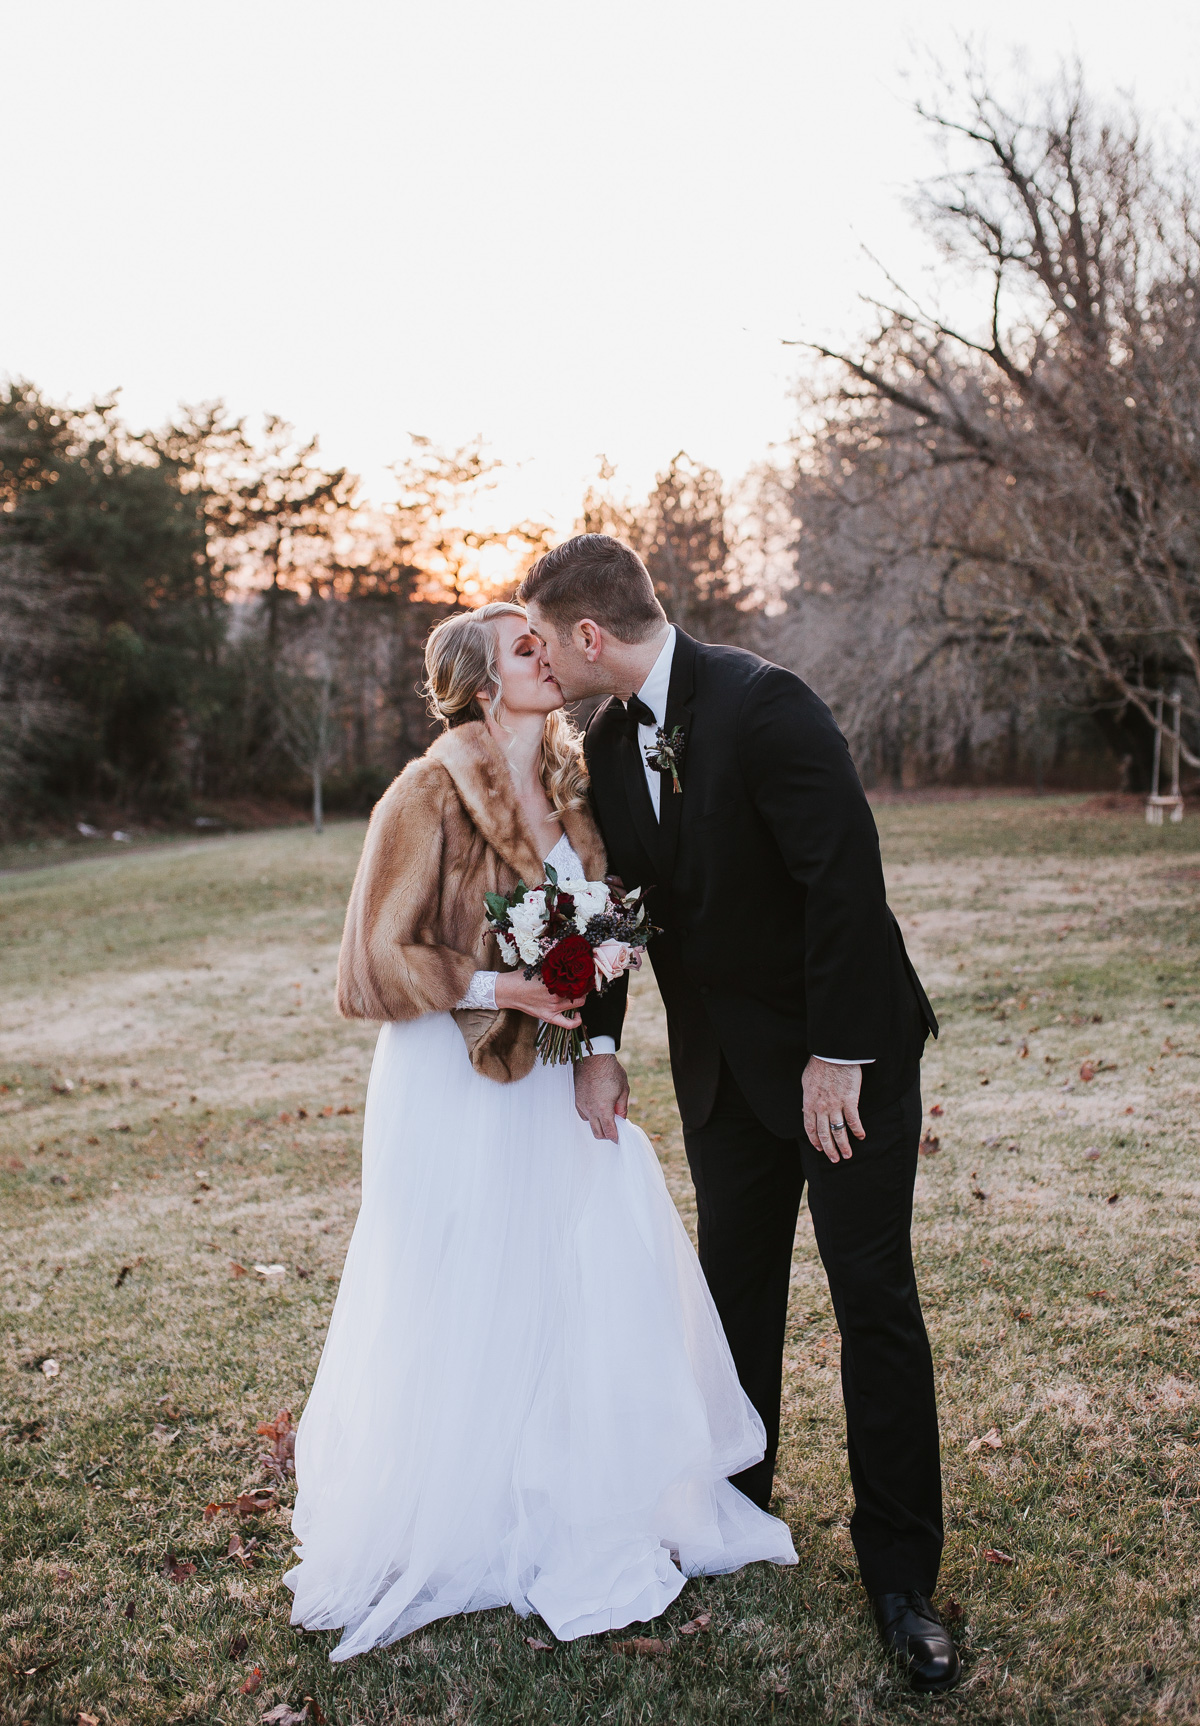 Charming December Winter Wedding | Kayli LaFon Photography | Greensboro Winston-Salem, NC Wedding Photographer